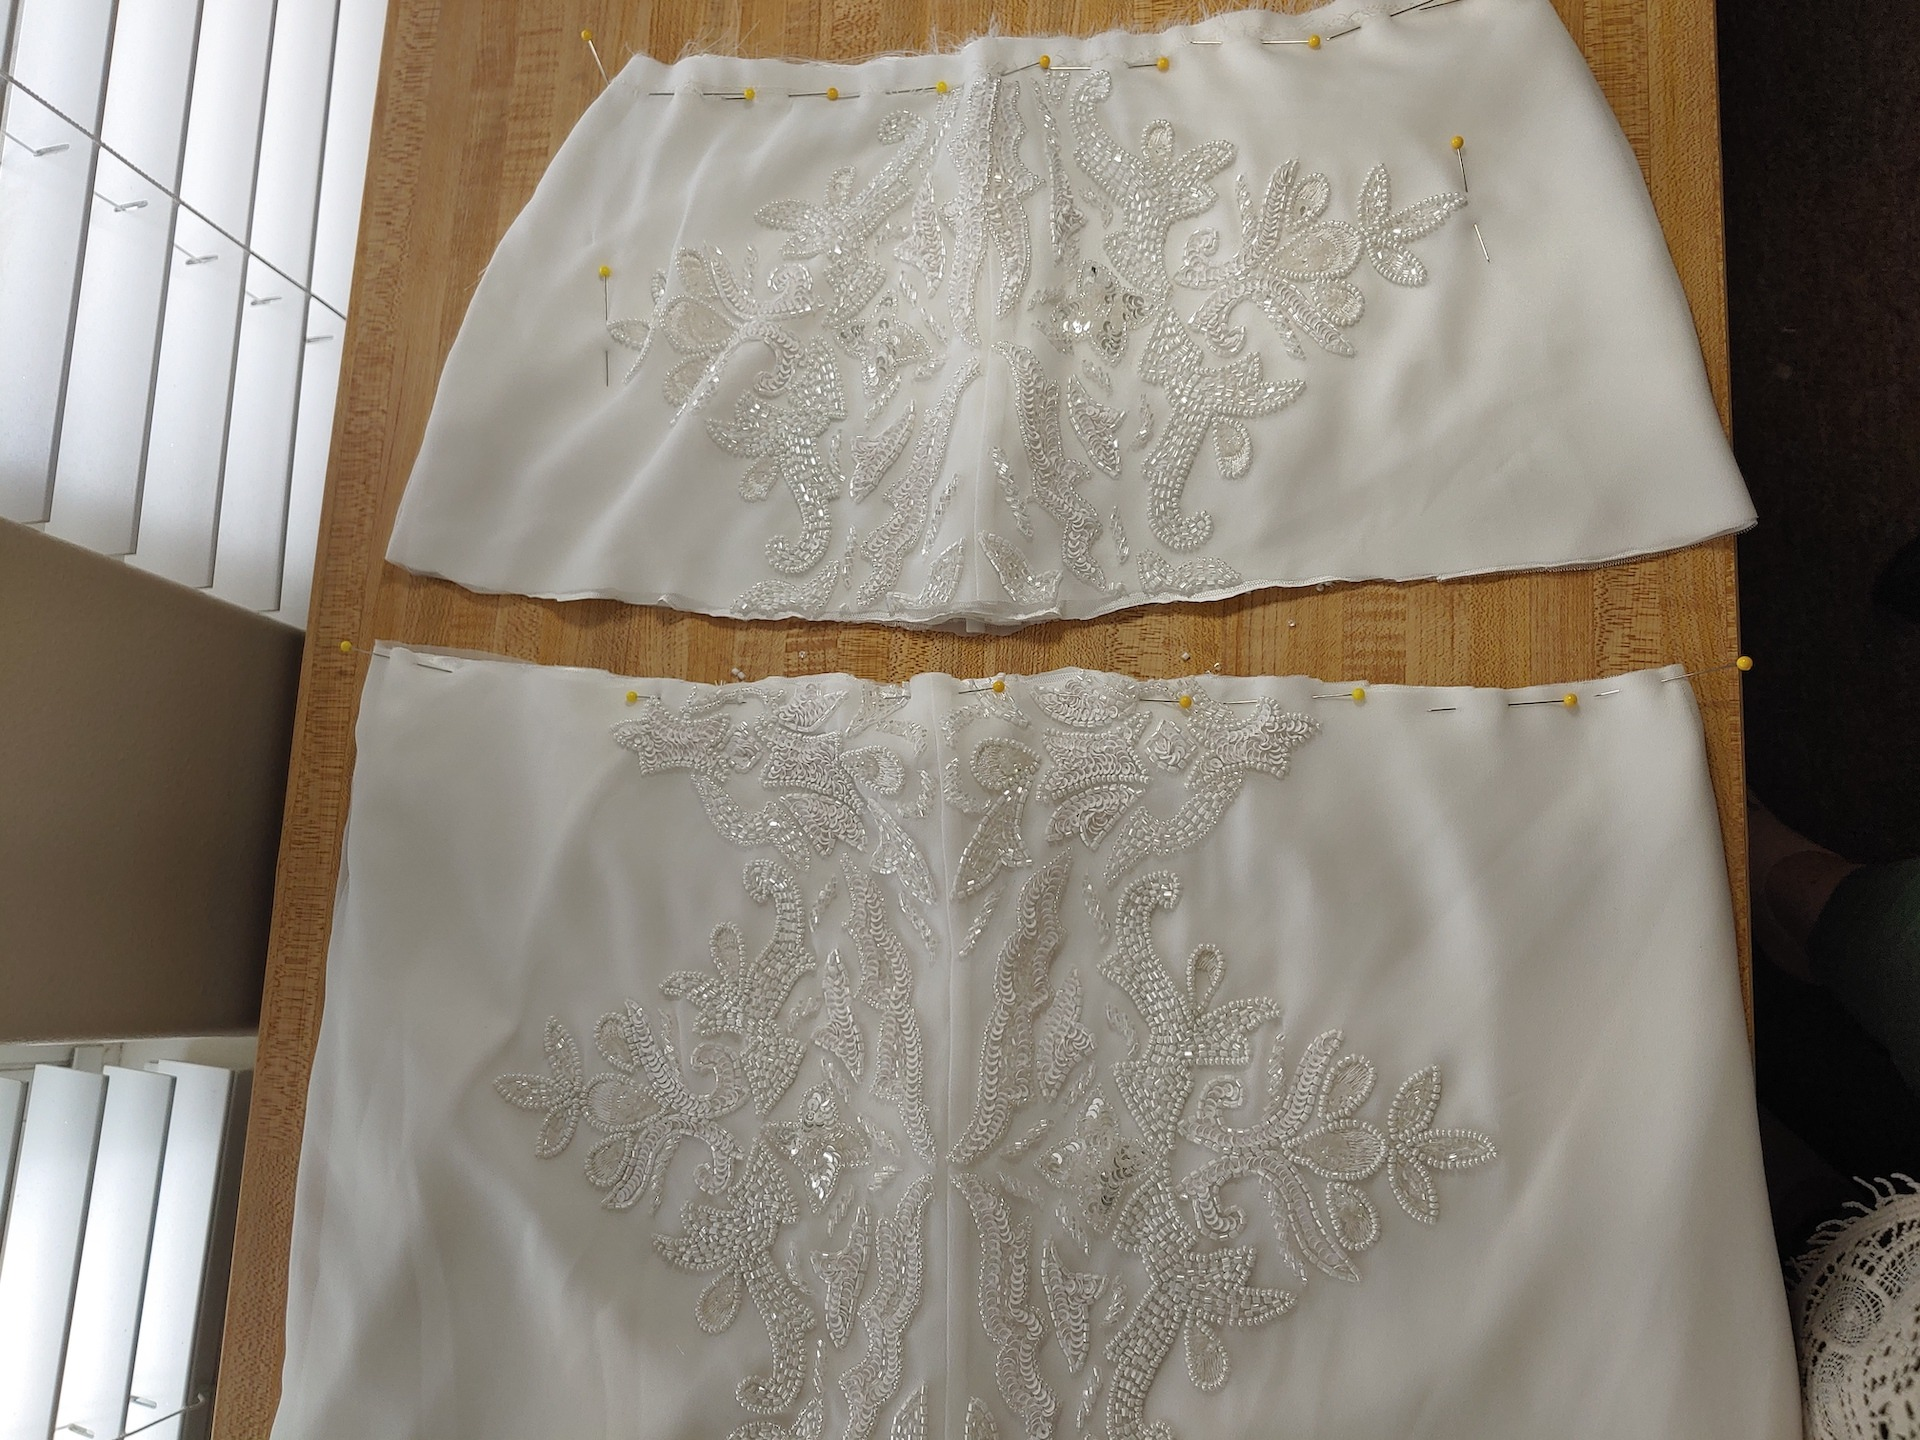 hemming the wedding dress from the waist